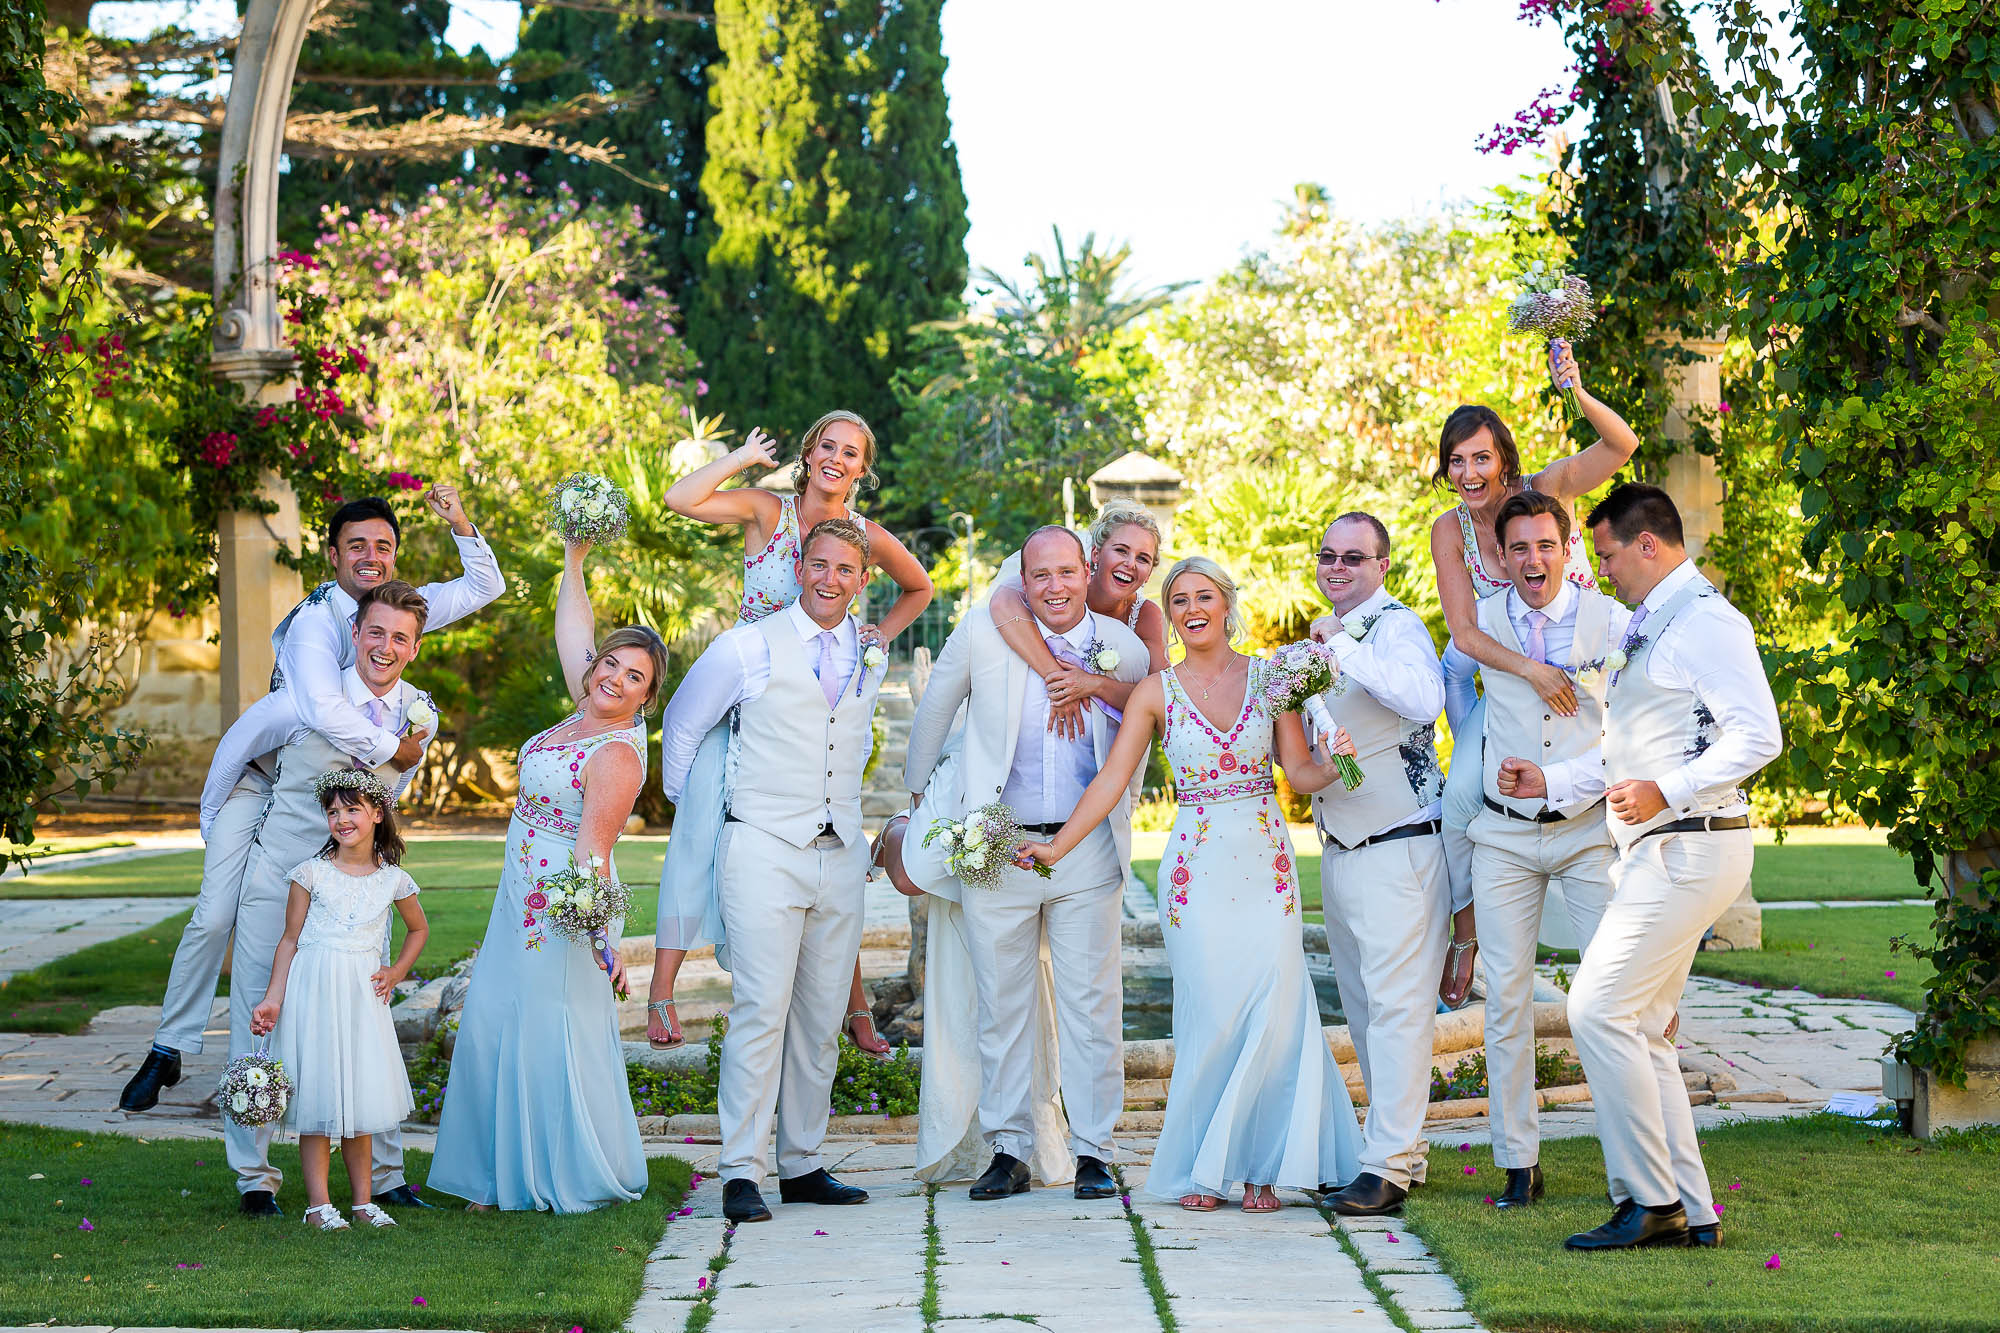 Wedding party group photo. Photo by Elliot Nichol Photography.